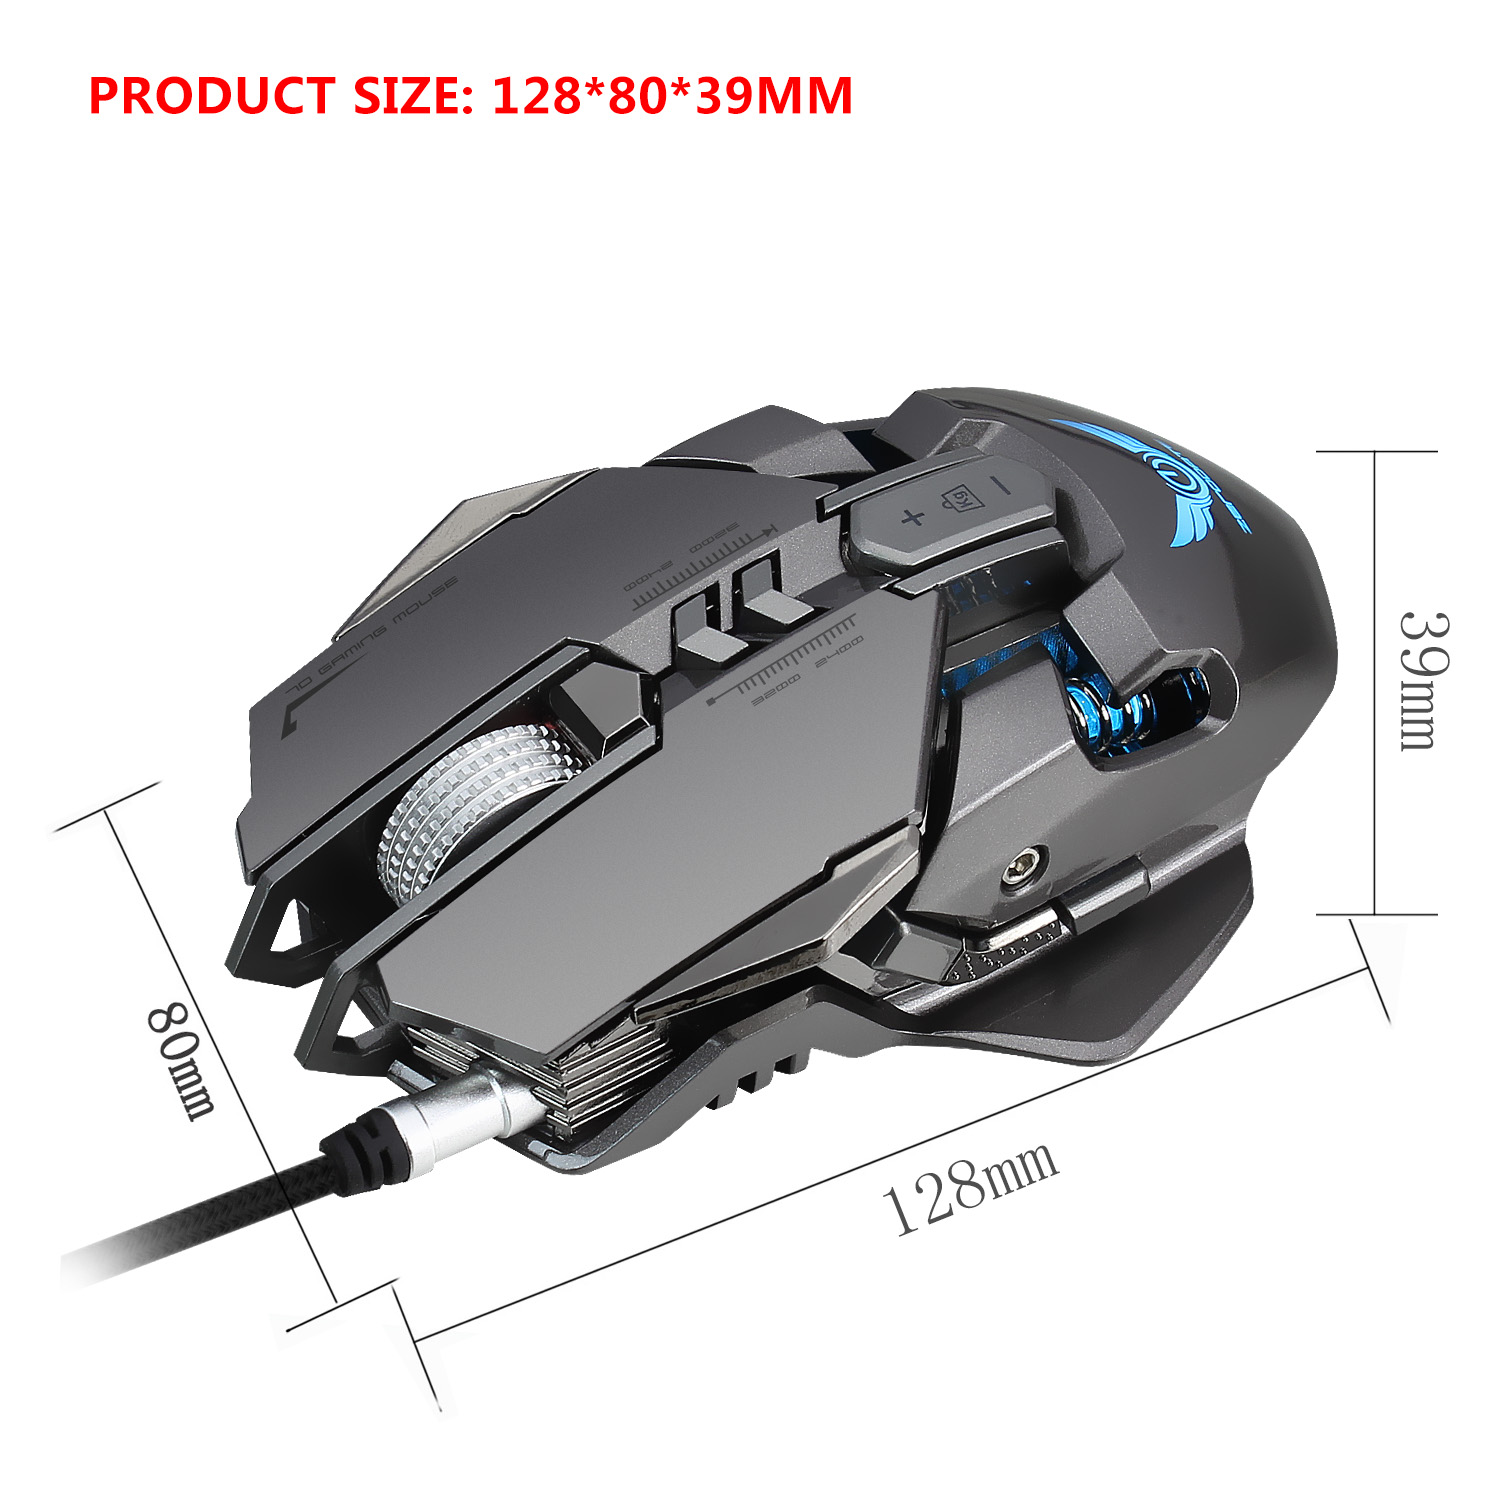 hight resolution of zeredate x300gy mechanical macros define gaming mouse 250 4000 dpi 7 keys usb wired optical